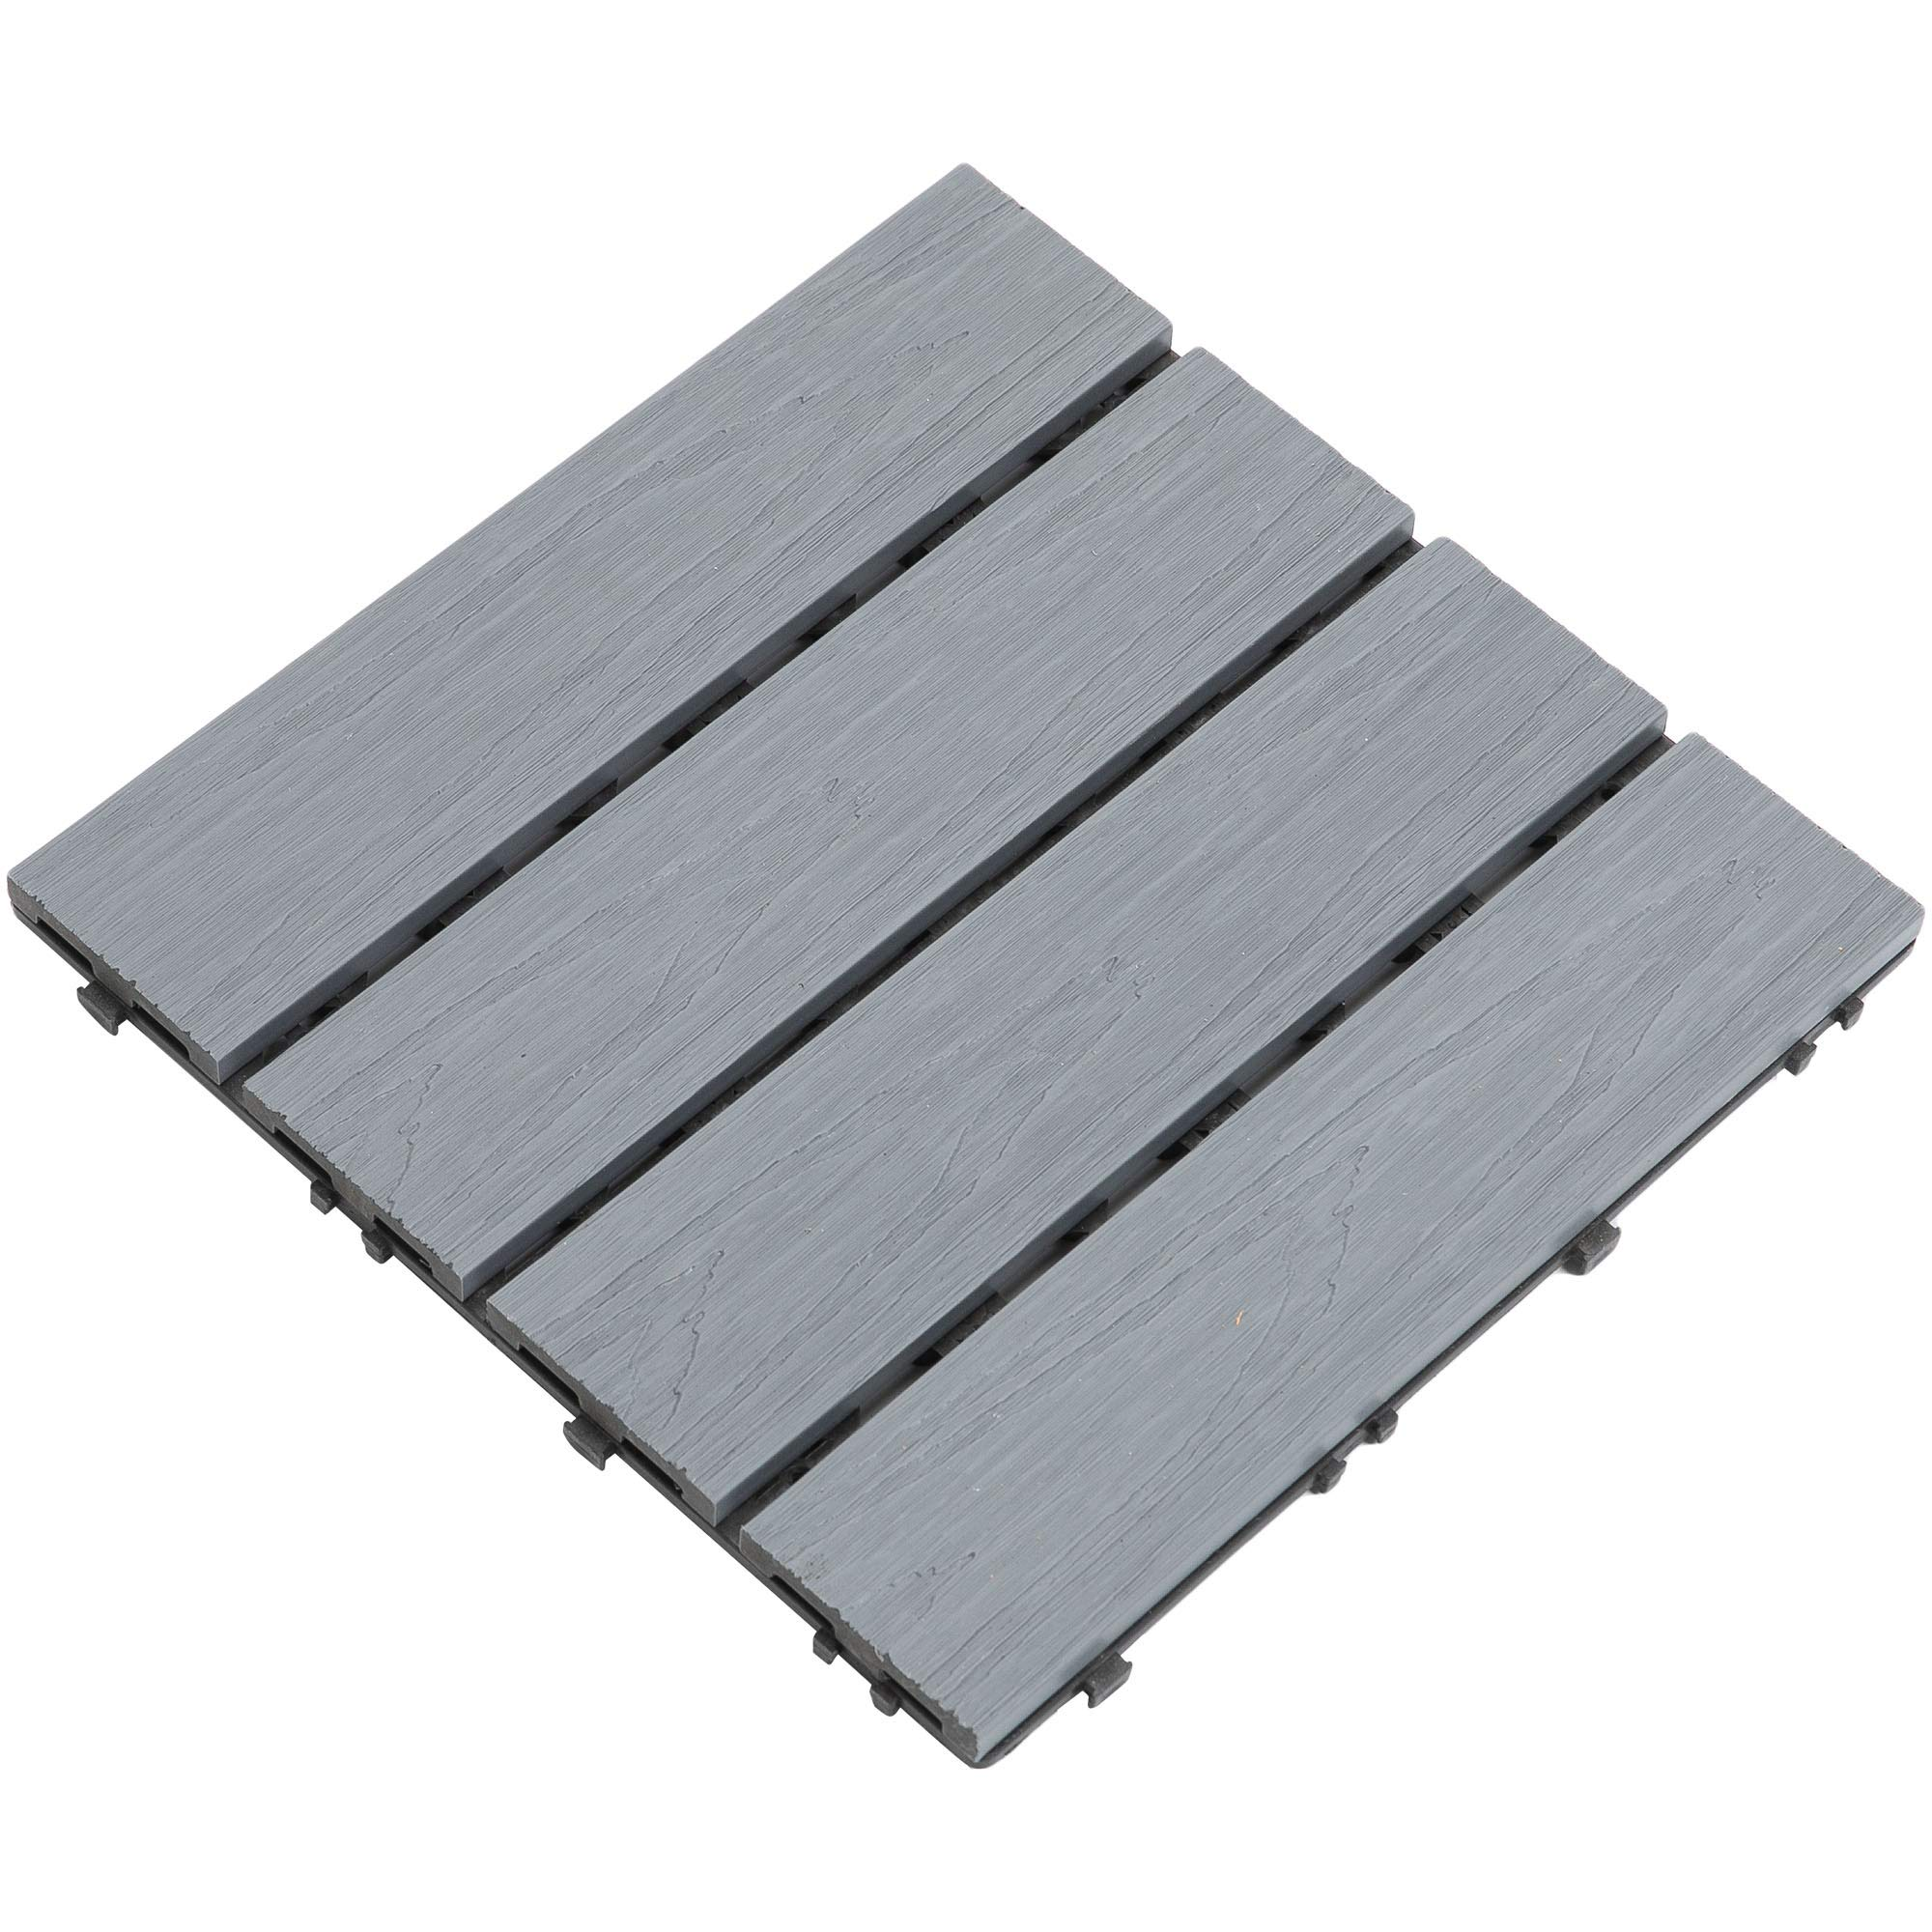 Samincom Deck Tiles Interlocking Wood-Plastic Composites Patio Pavers, Water Resistant Flooring Tiles Indoor Outdoor, 12''× 12'', Pack of 22 (22 sq.ft), Coextrusion Pattern, Gray by Samincom